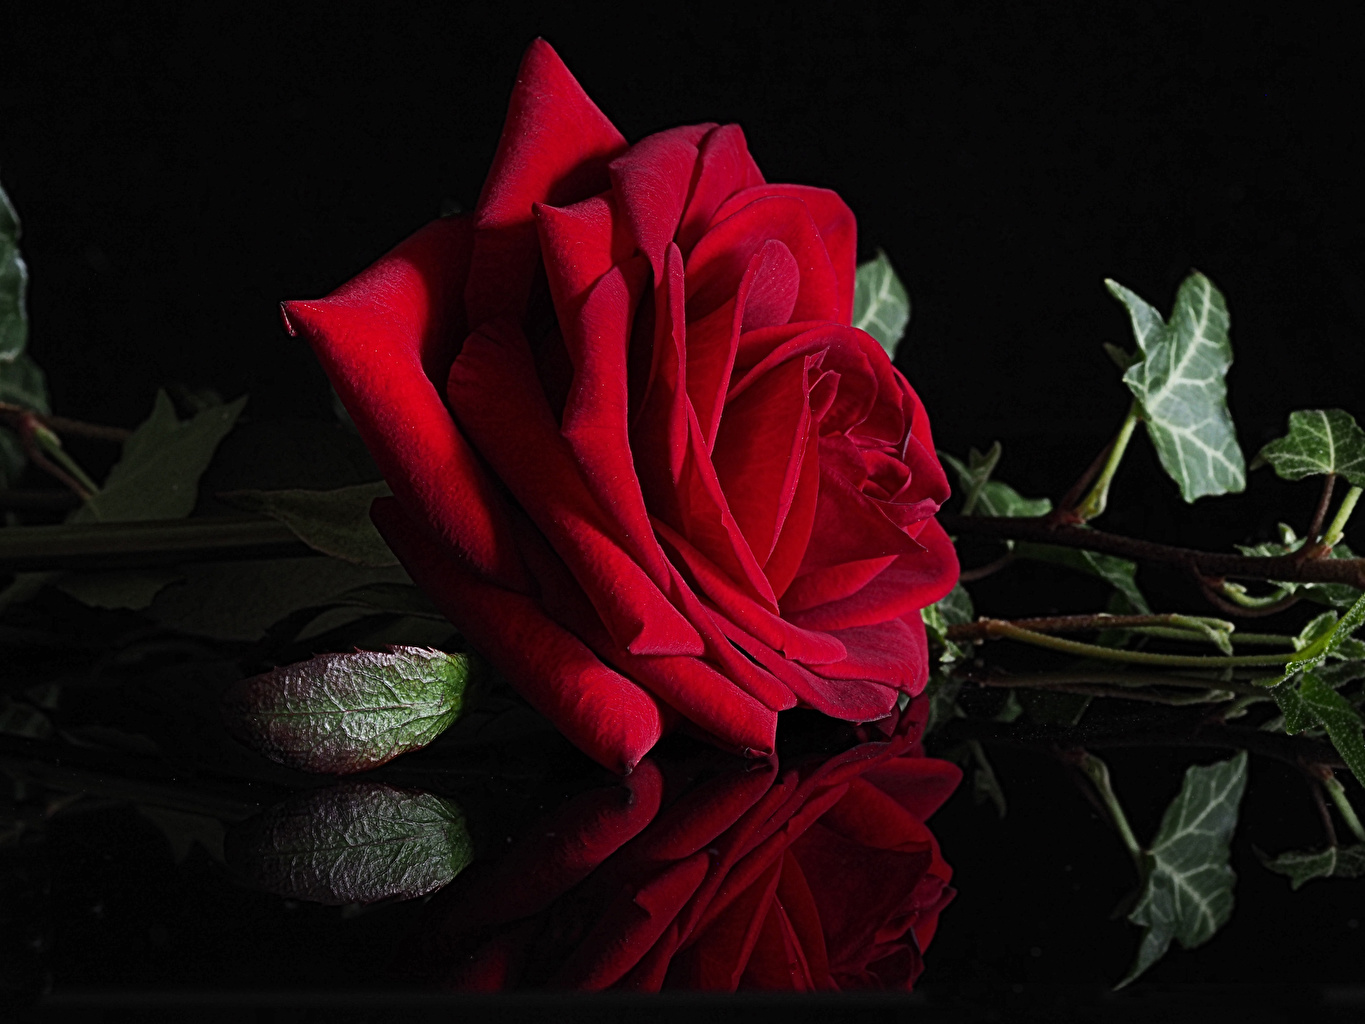 Images rose dark red Flowers Reflection Closeup Black background Roses maroon burgundy Wine color flower reflected